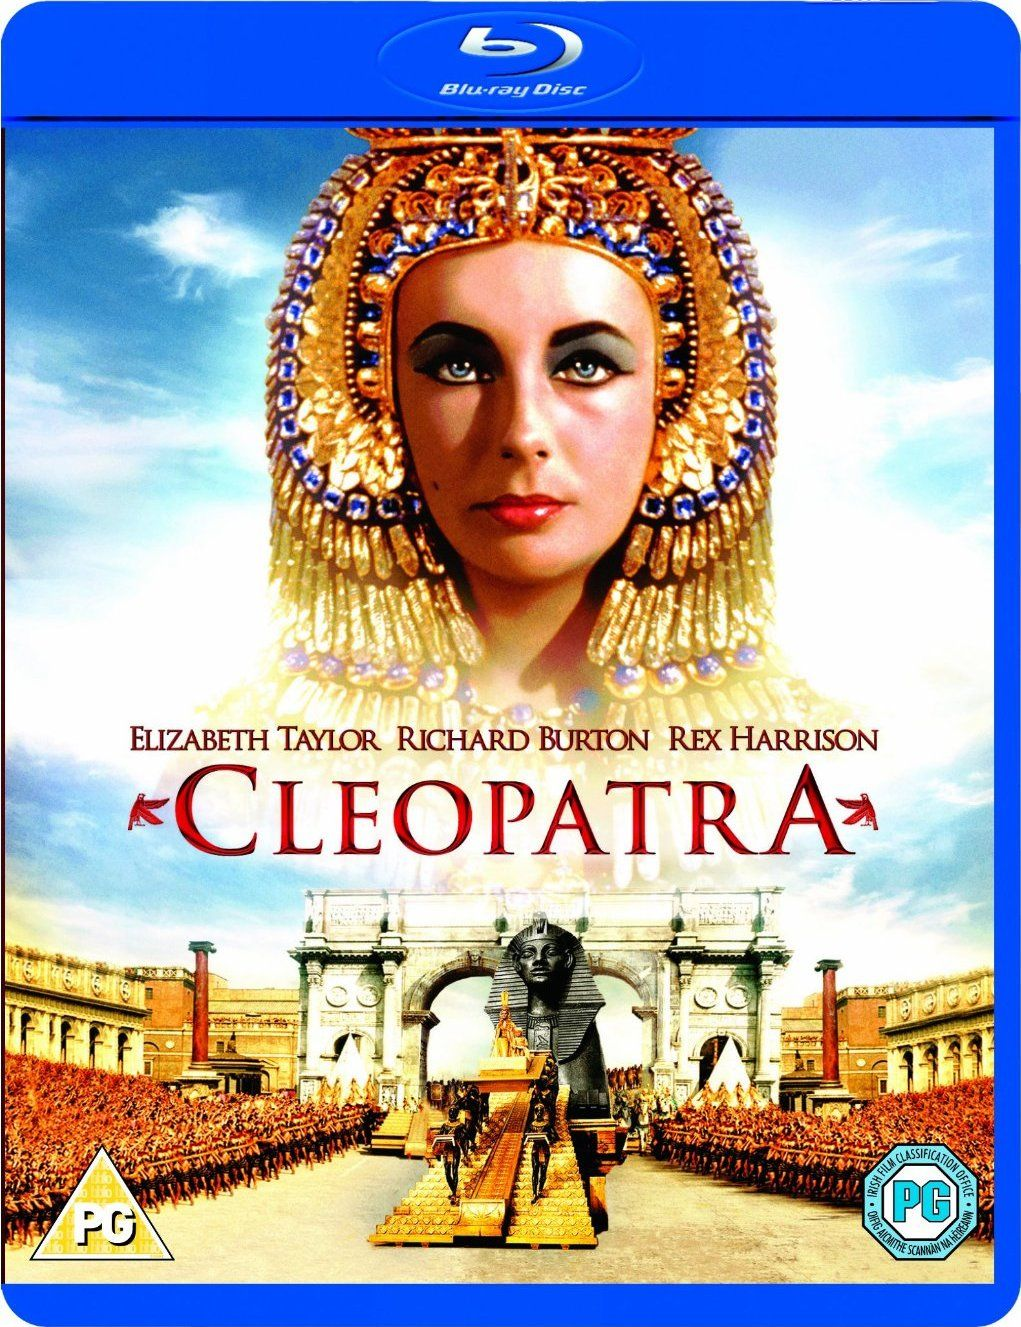 Cleopatra 1963 Film Cleopatra Is A 1963 British American Swiss Epic Drama Film Directed By Joseph L Mankiewicz The Elizabeth Taylor Cleopatra Filmposters